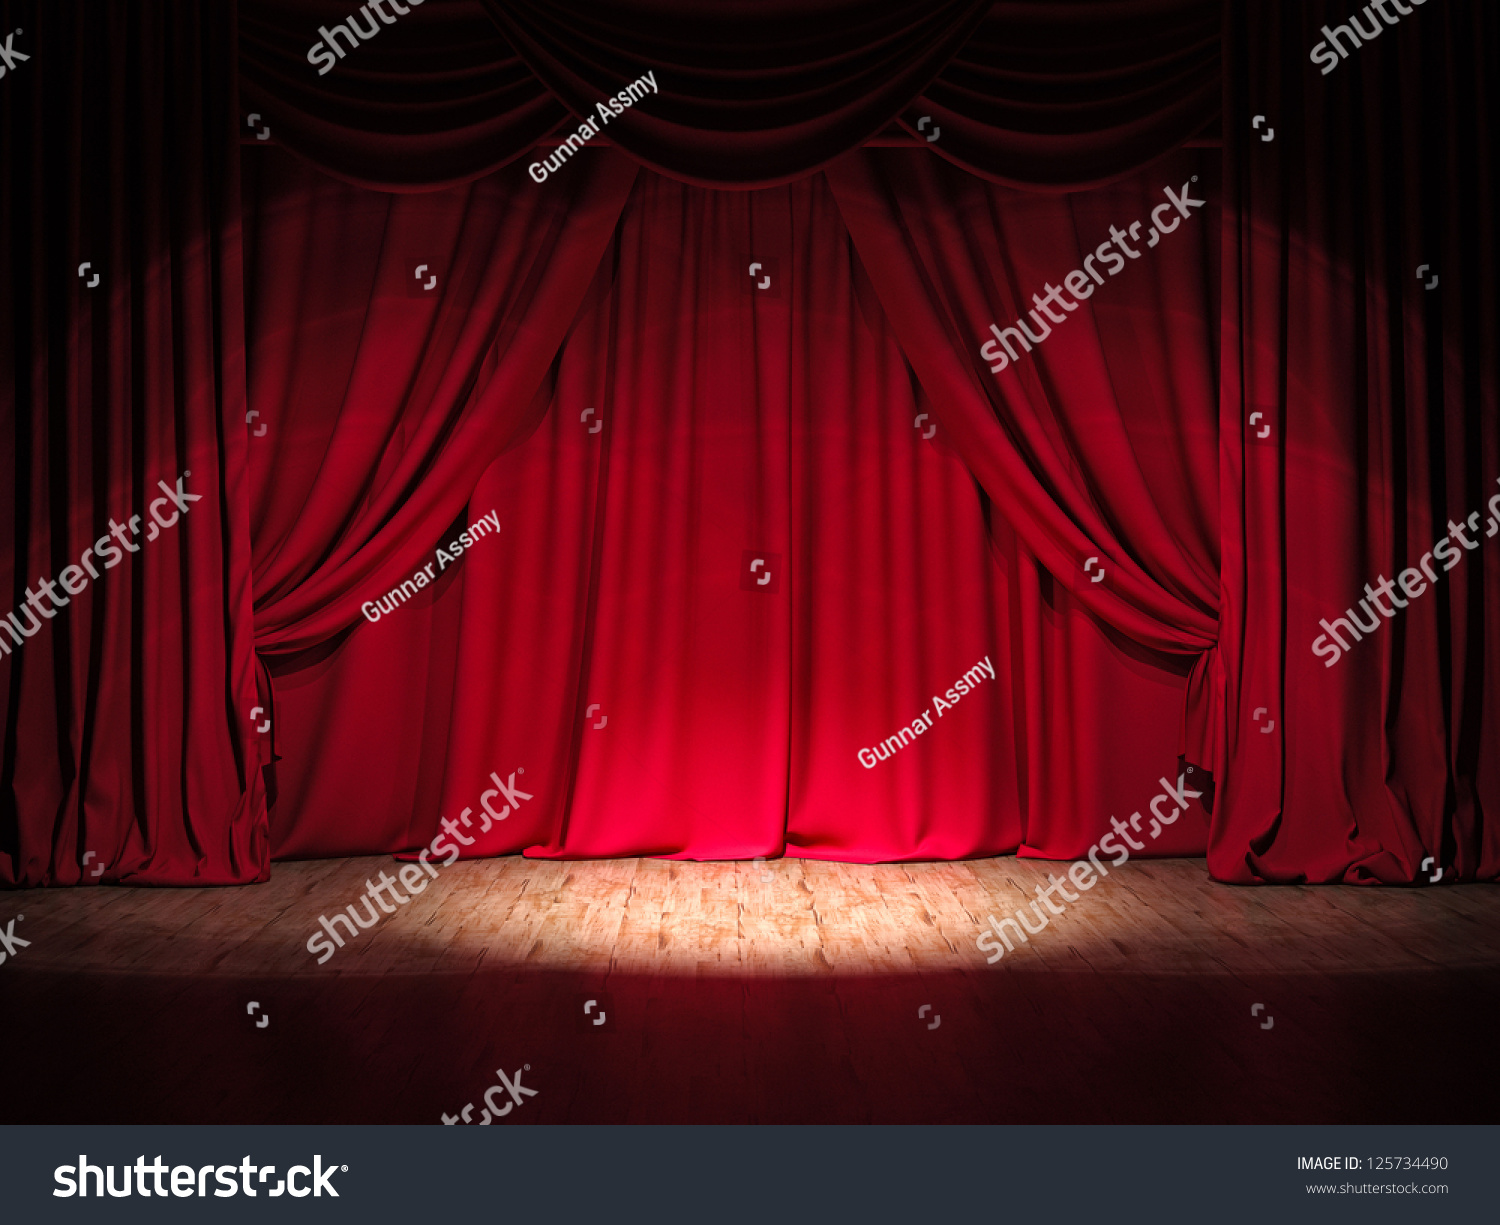 Stage curtains spotlight - Theater Stage Red Curtains Show Spotlight